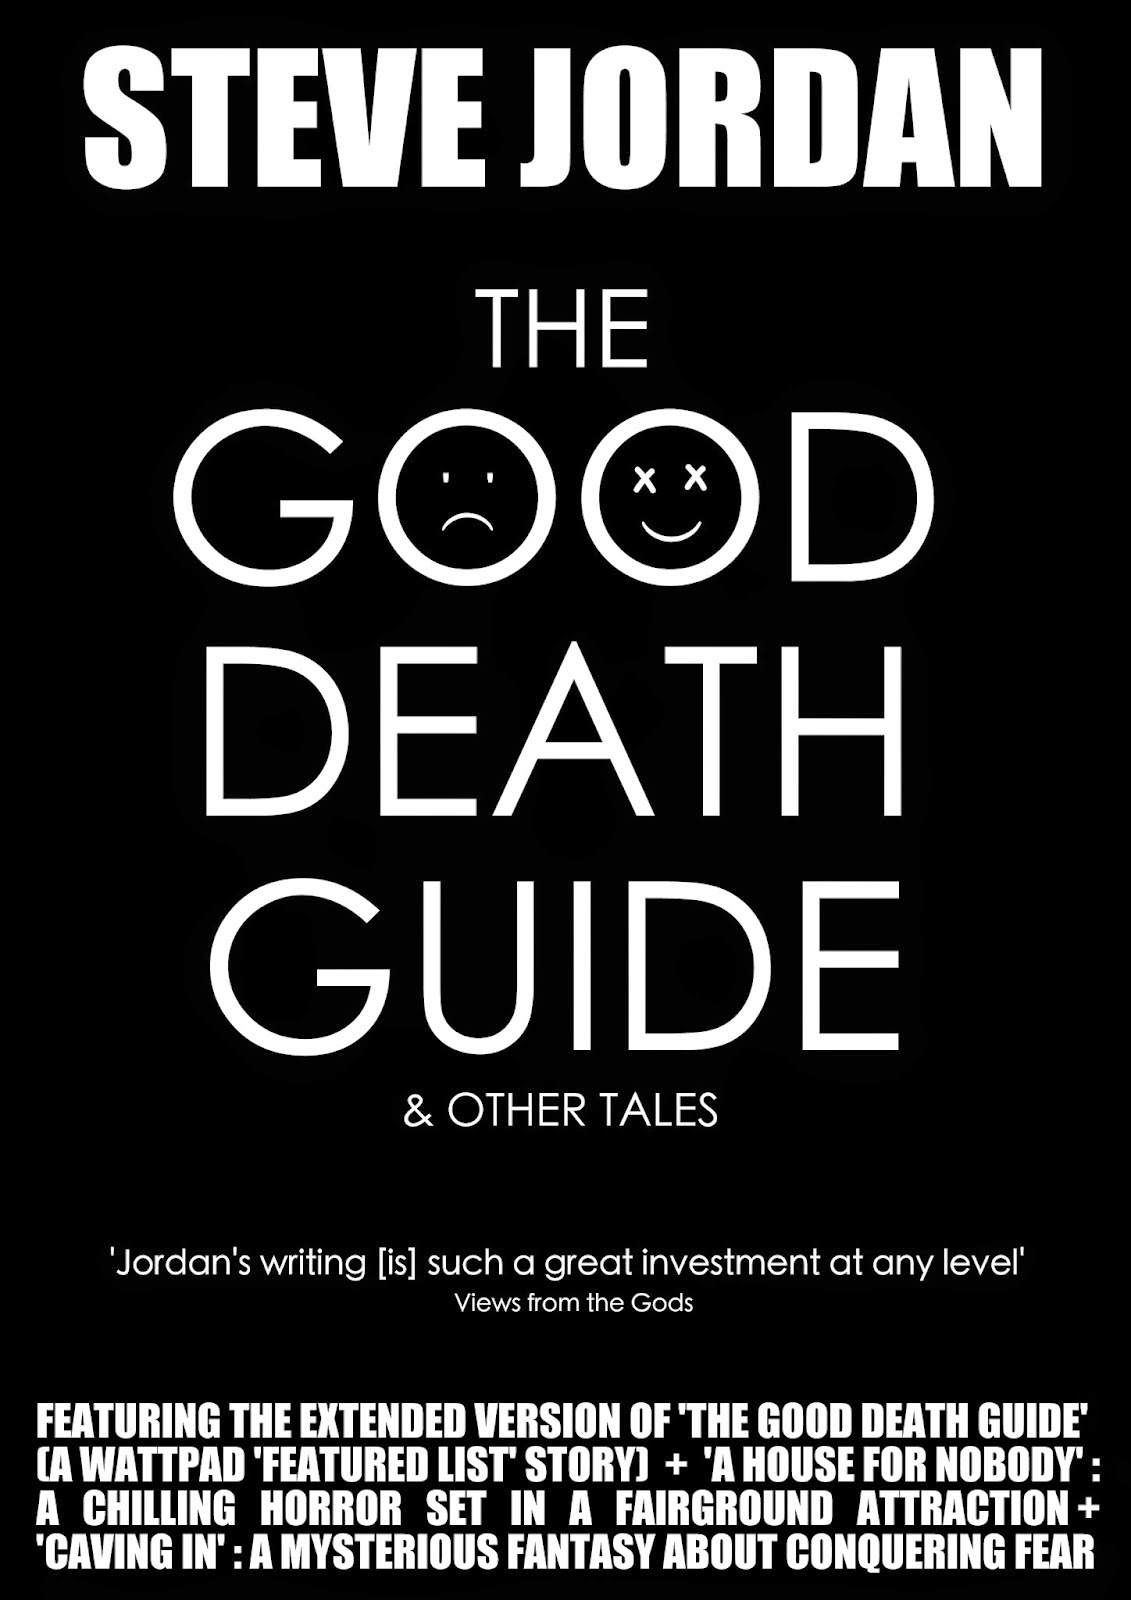 The Good Death Guide and Other Tales